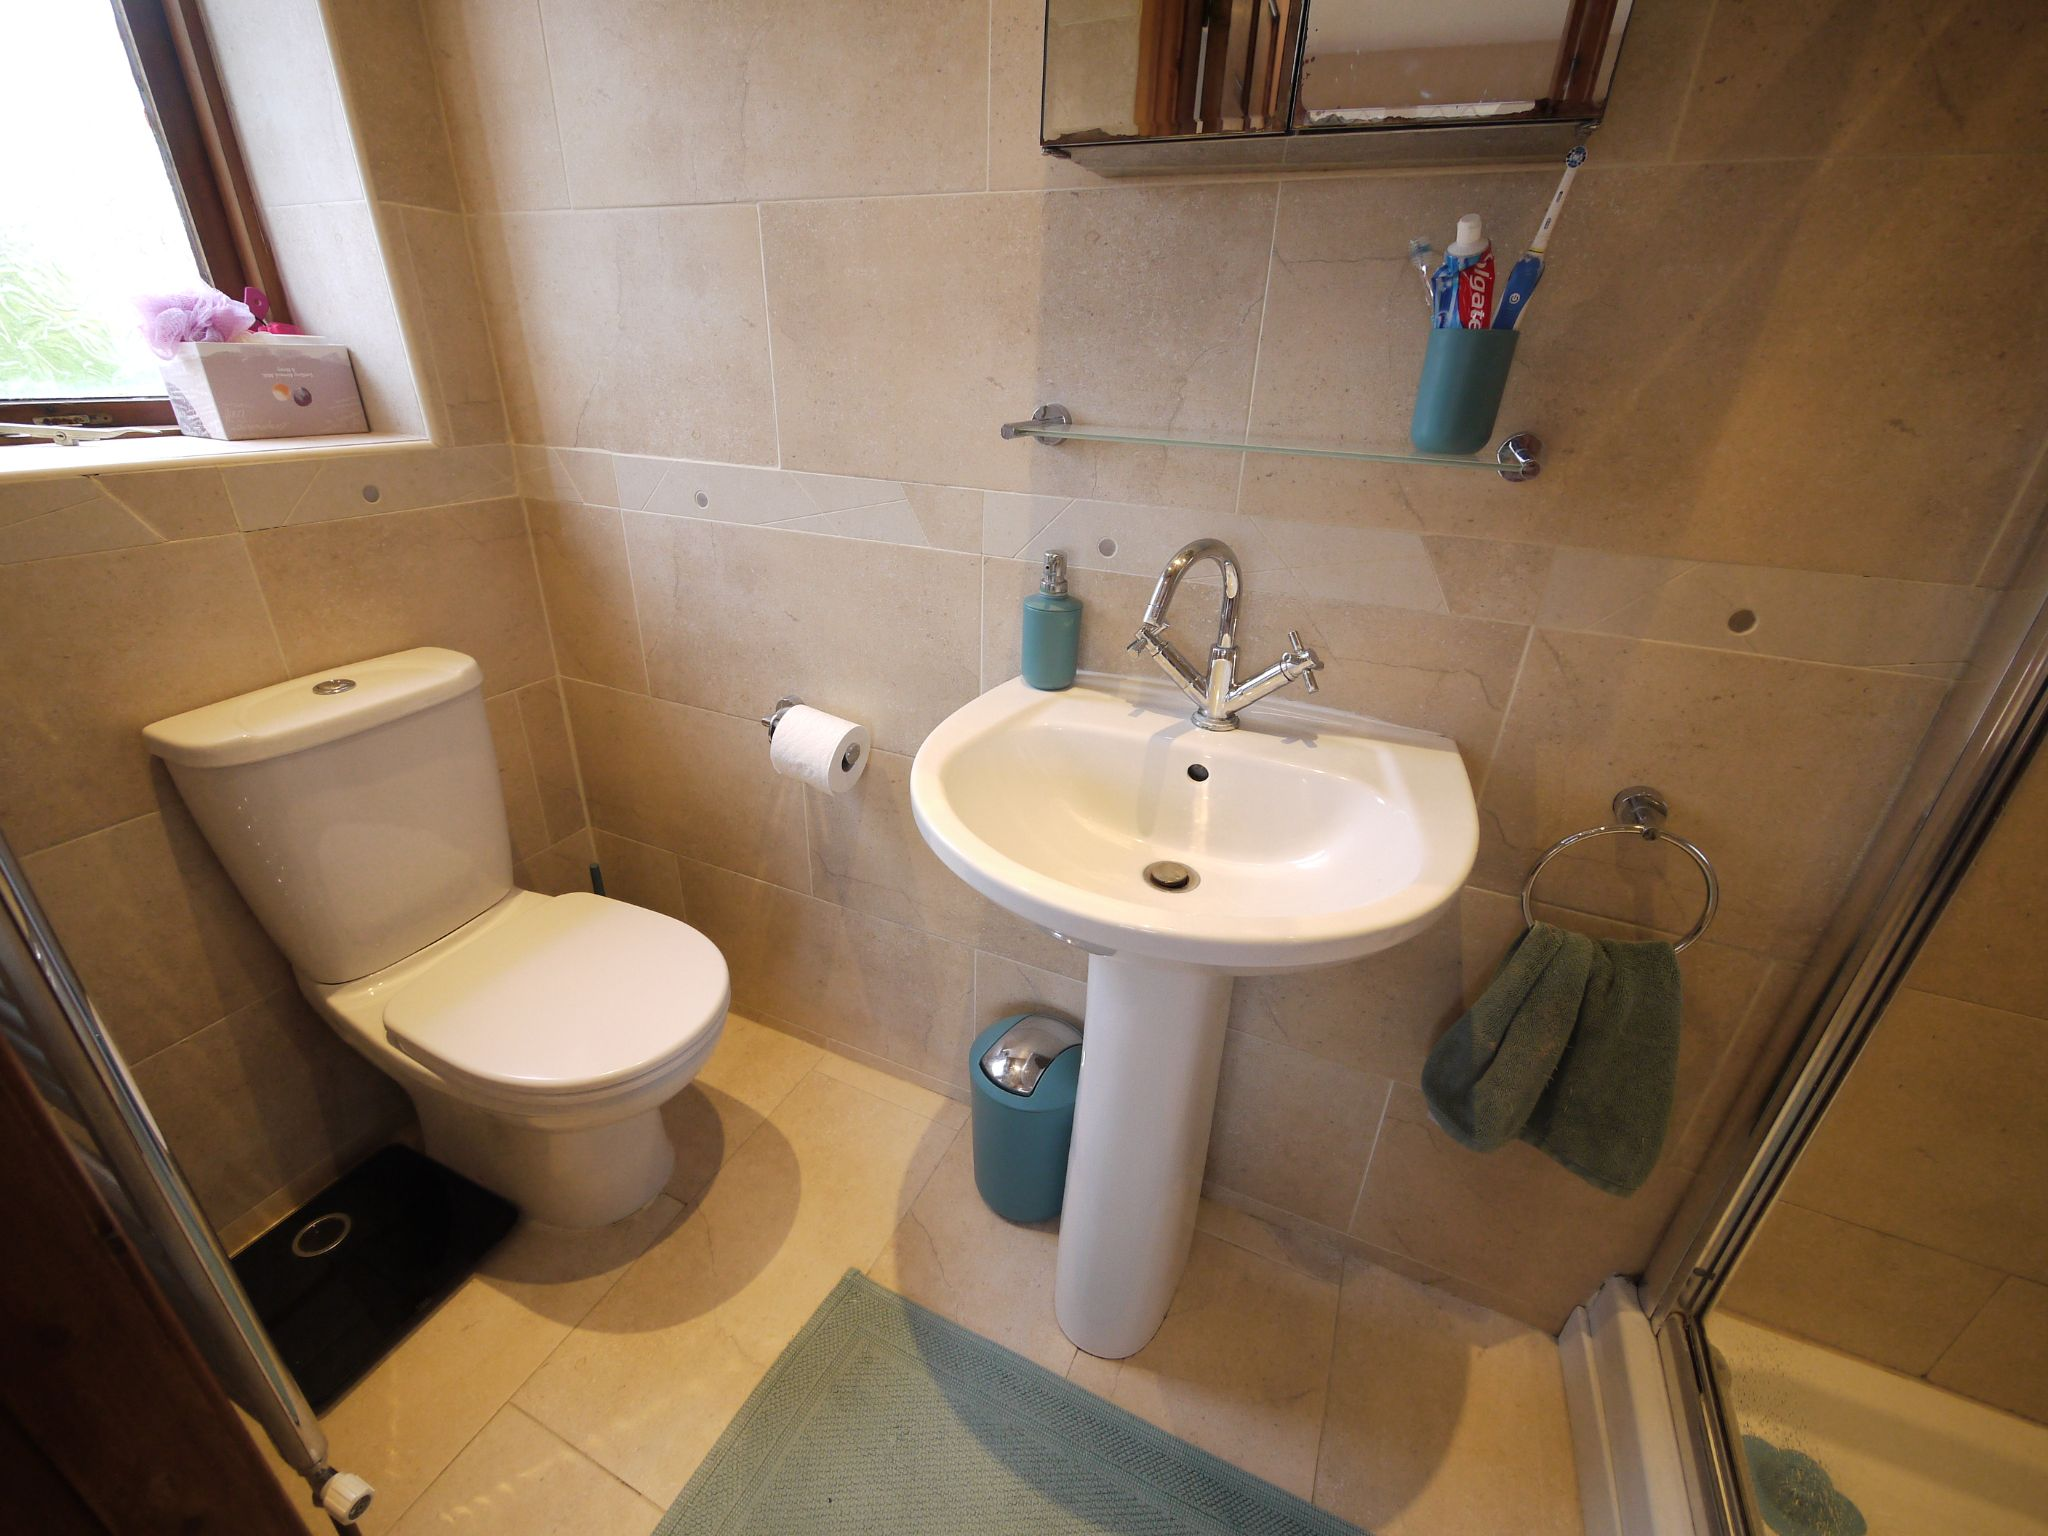 4 bedroom detached house SSTC in Brighouse - Ensuite 1.